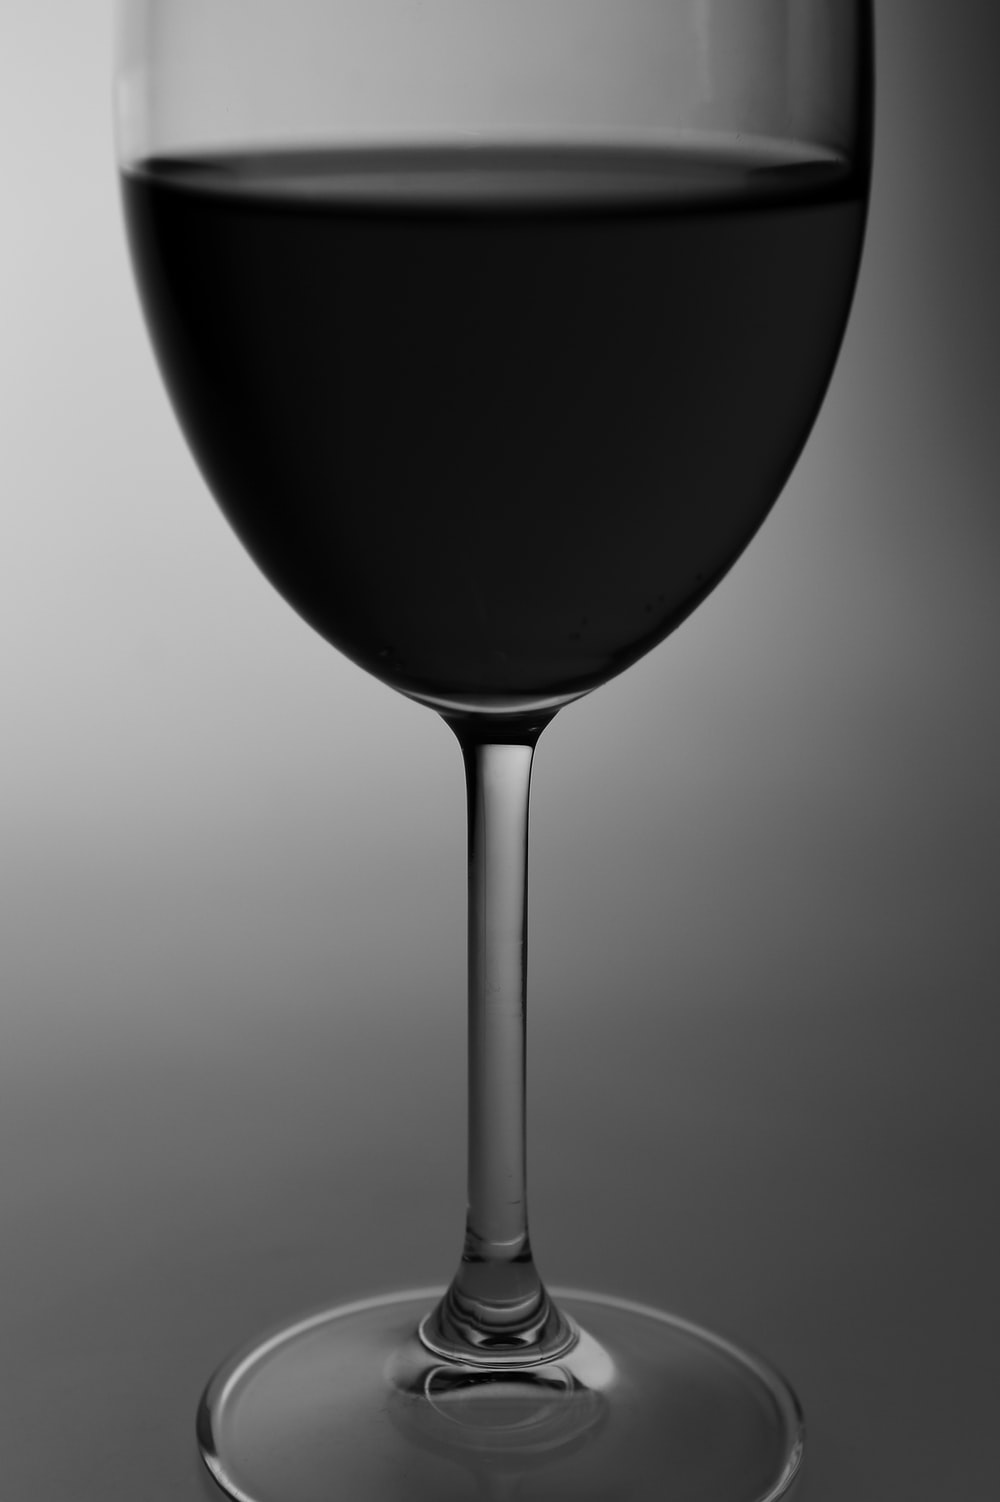 black wine glass on white surface